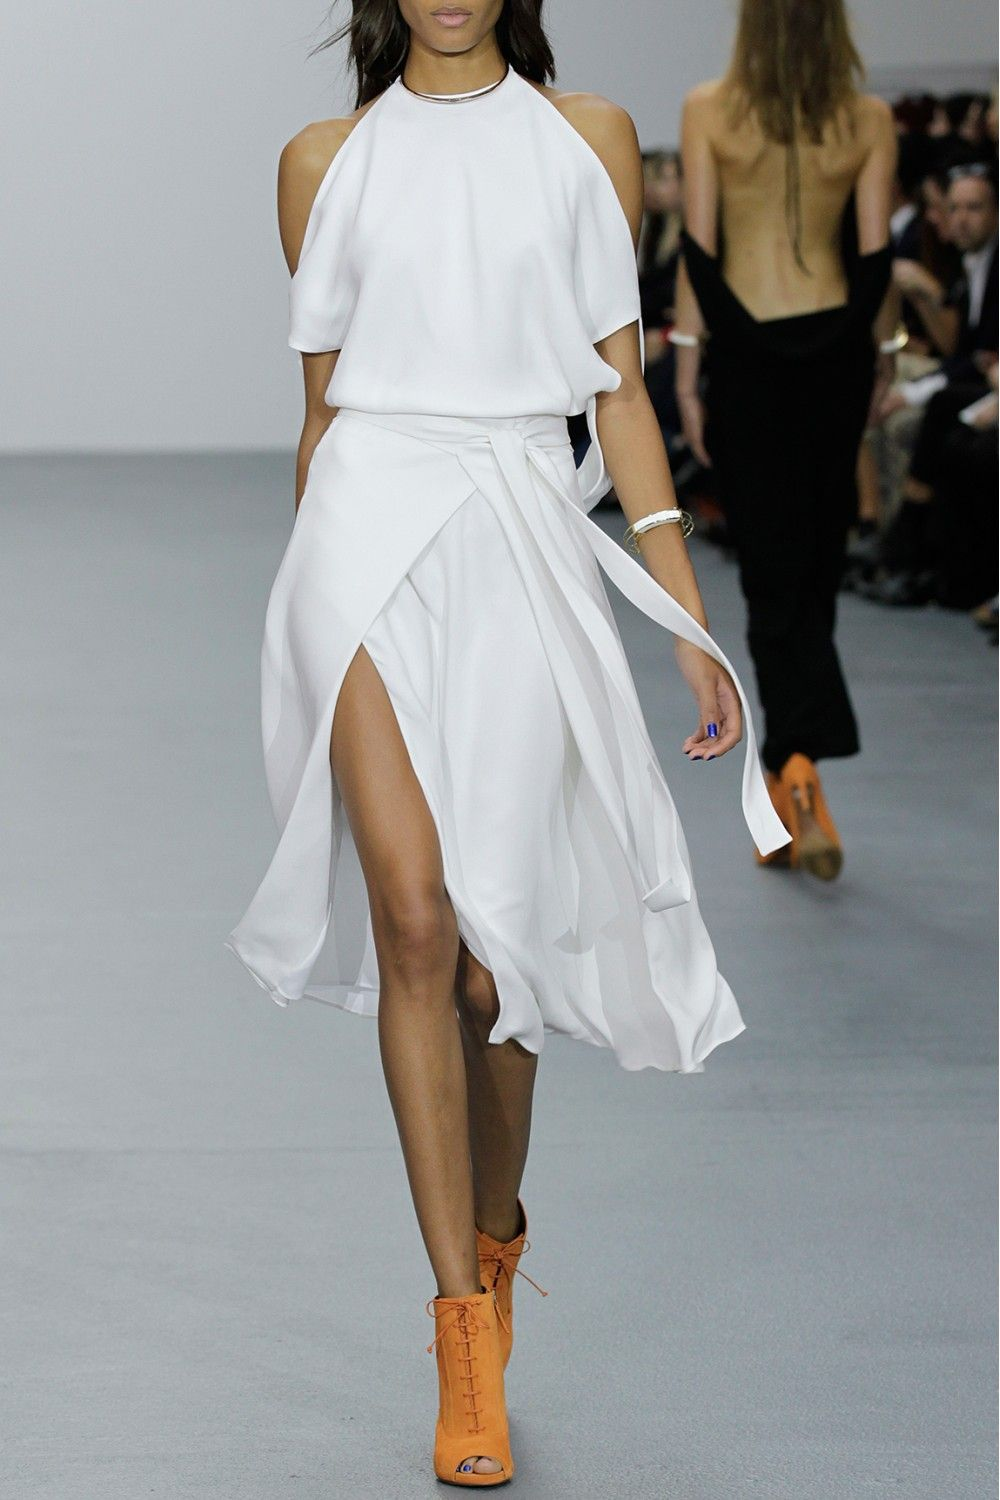 Issa Bir White Silk Dress The Black Jumpsuit In Back Is As Fabulous